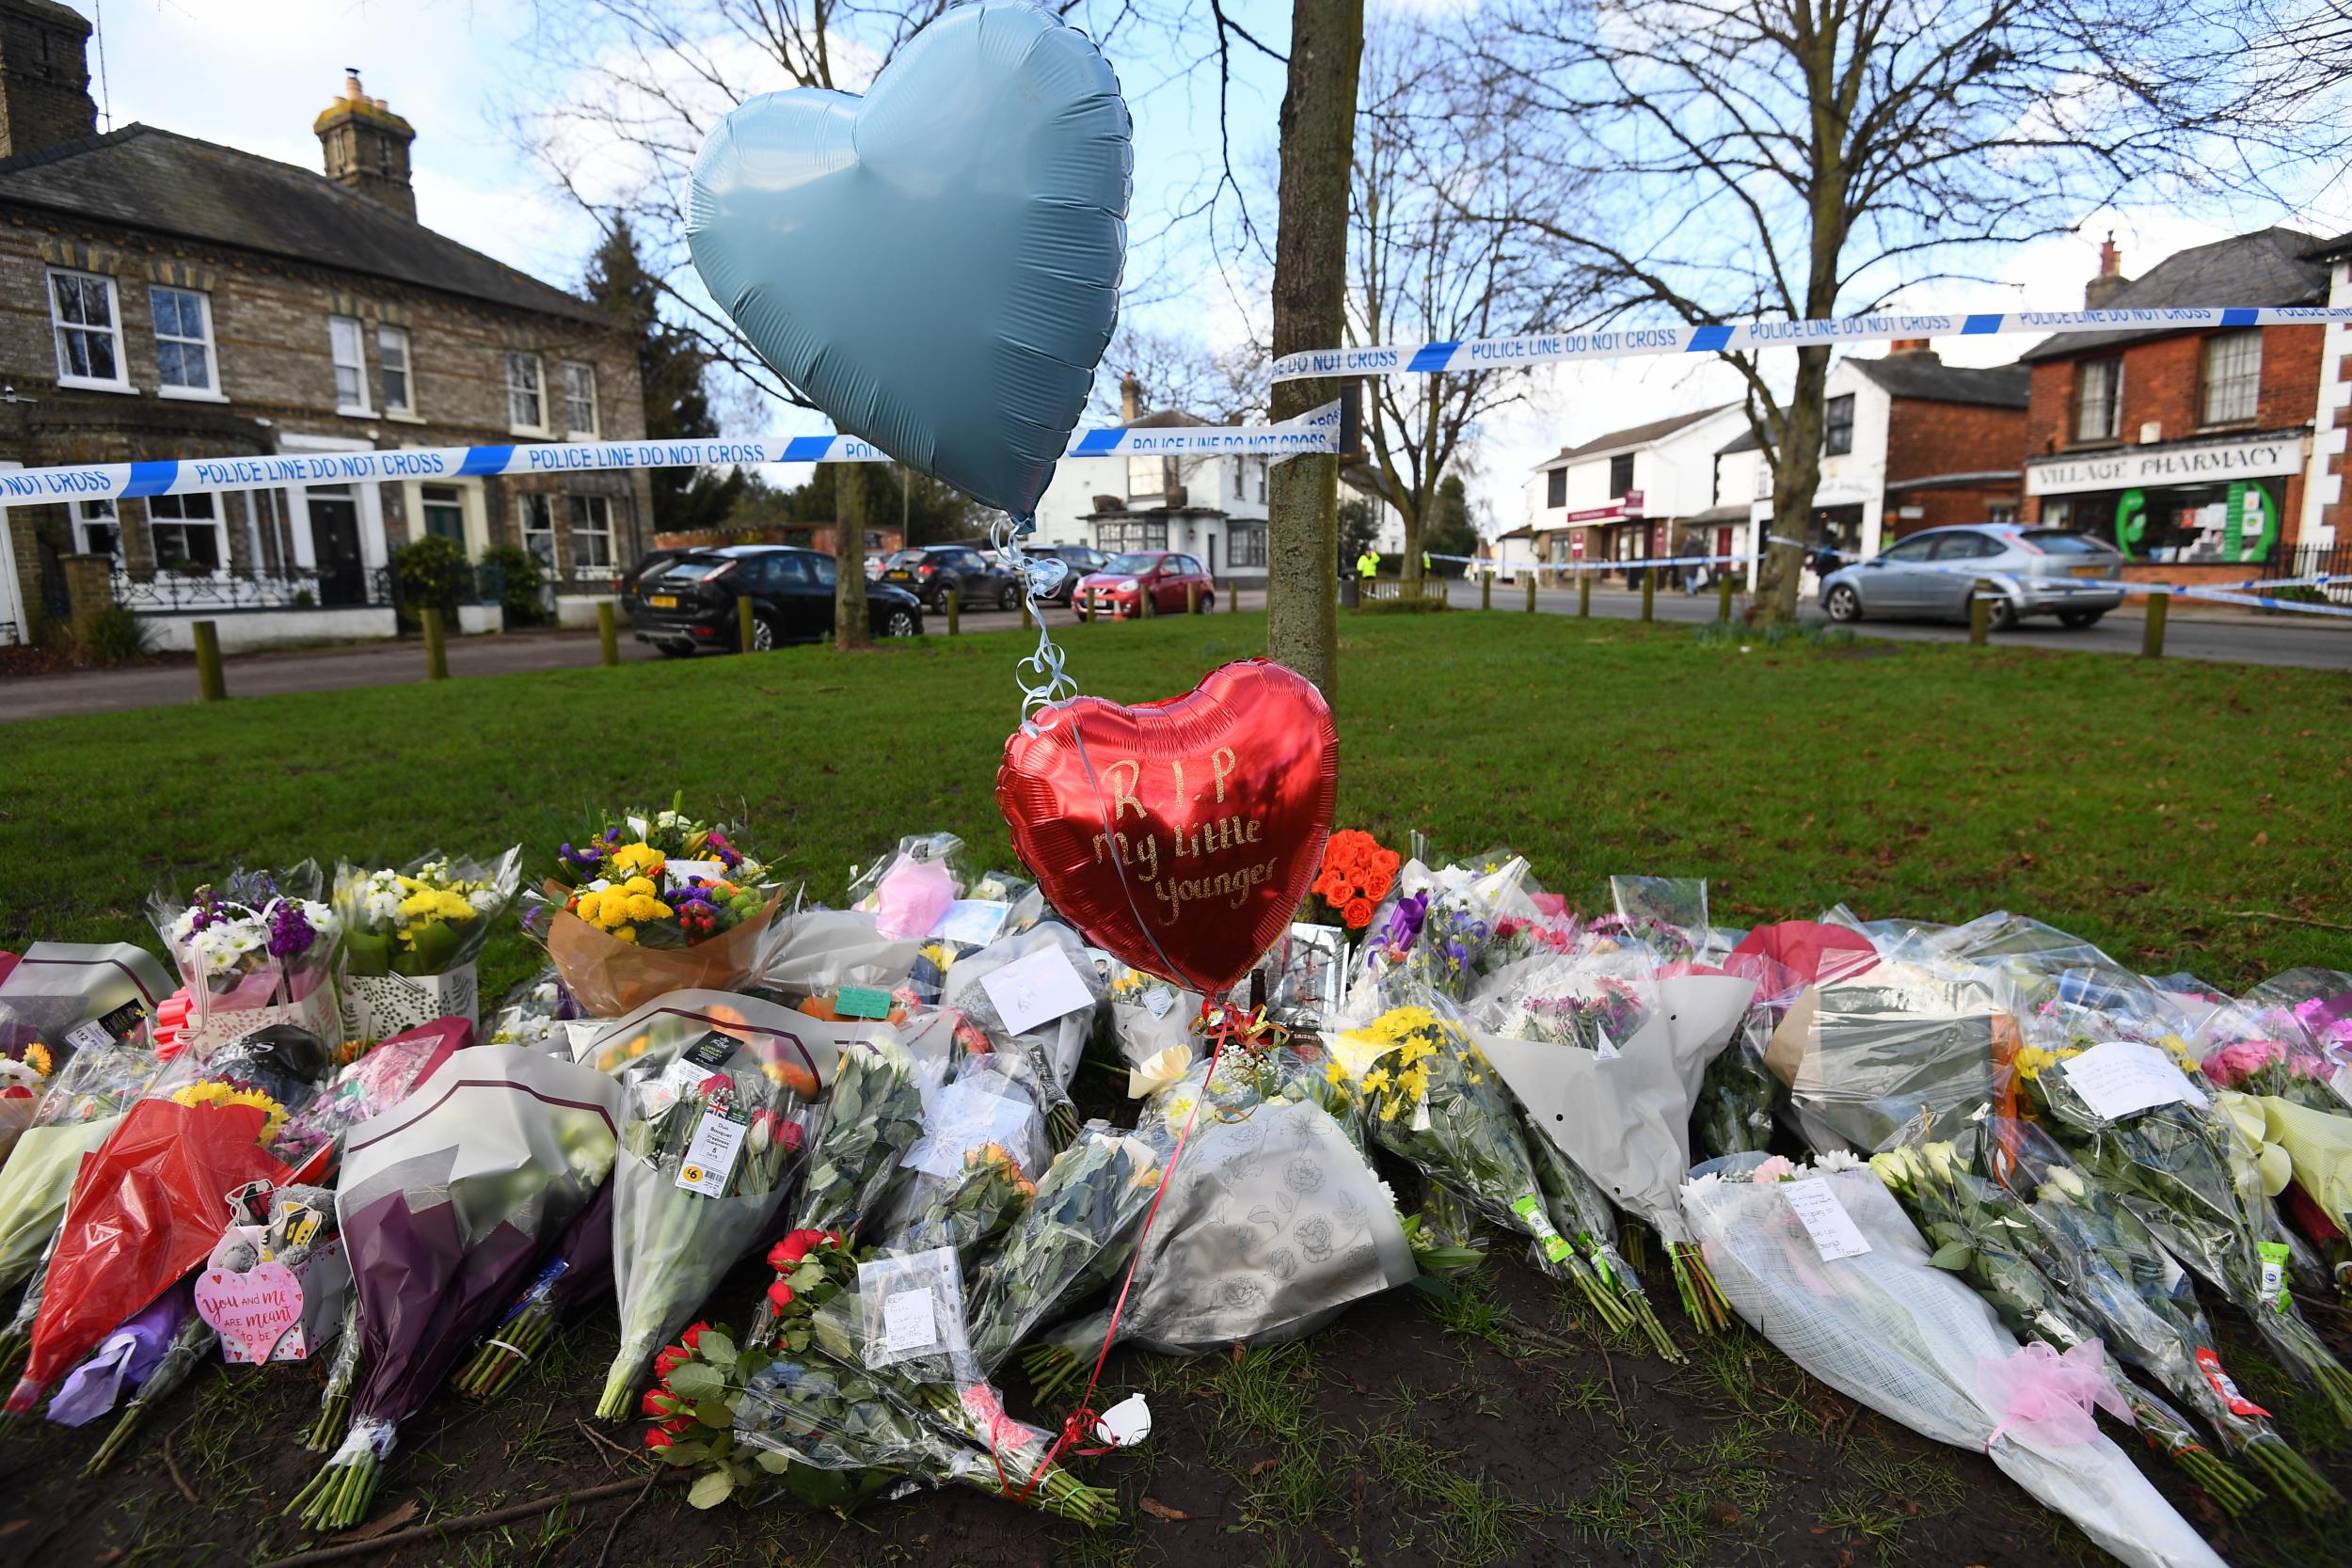 Writtle stabbing: Tributes paid to 'lovely and caring' teenager killed in 'targeted attack' outside Essex pub - Evening Standard